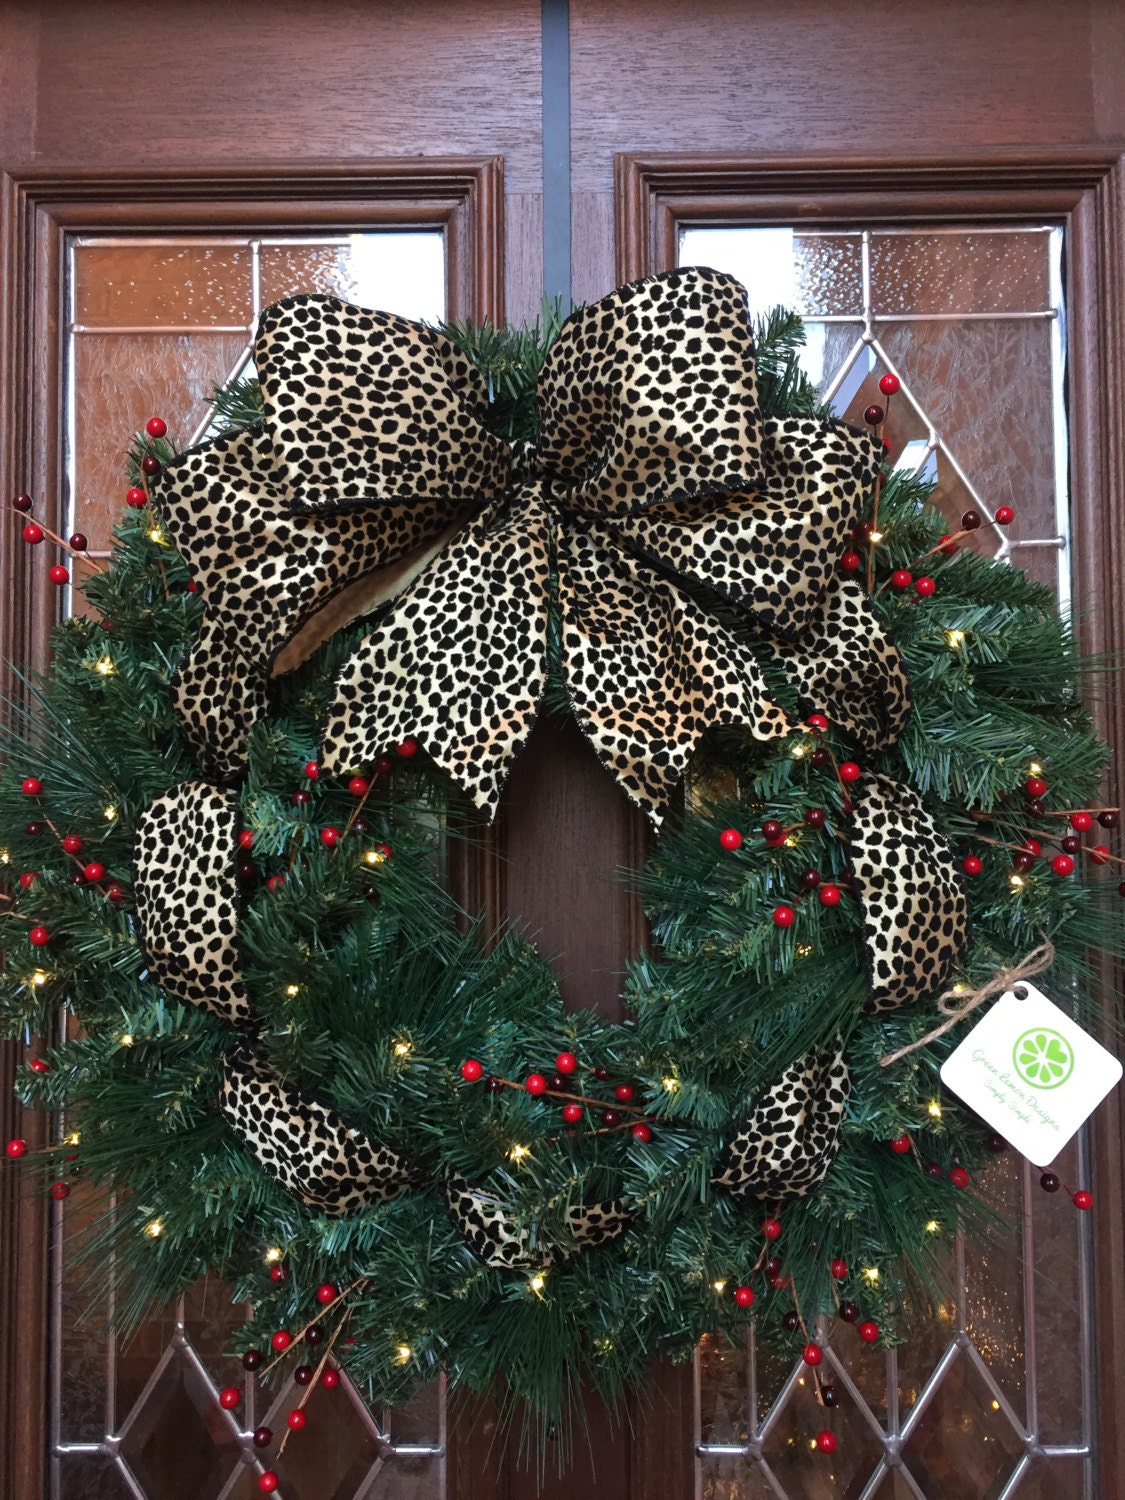 Christmas Wreath, Cheetah Bow, Red Berries, Garland Wreath, Leopard, Animal  Print, Winter Wreath